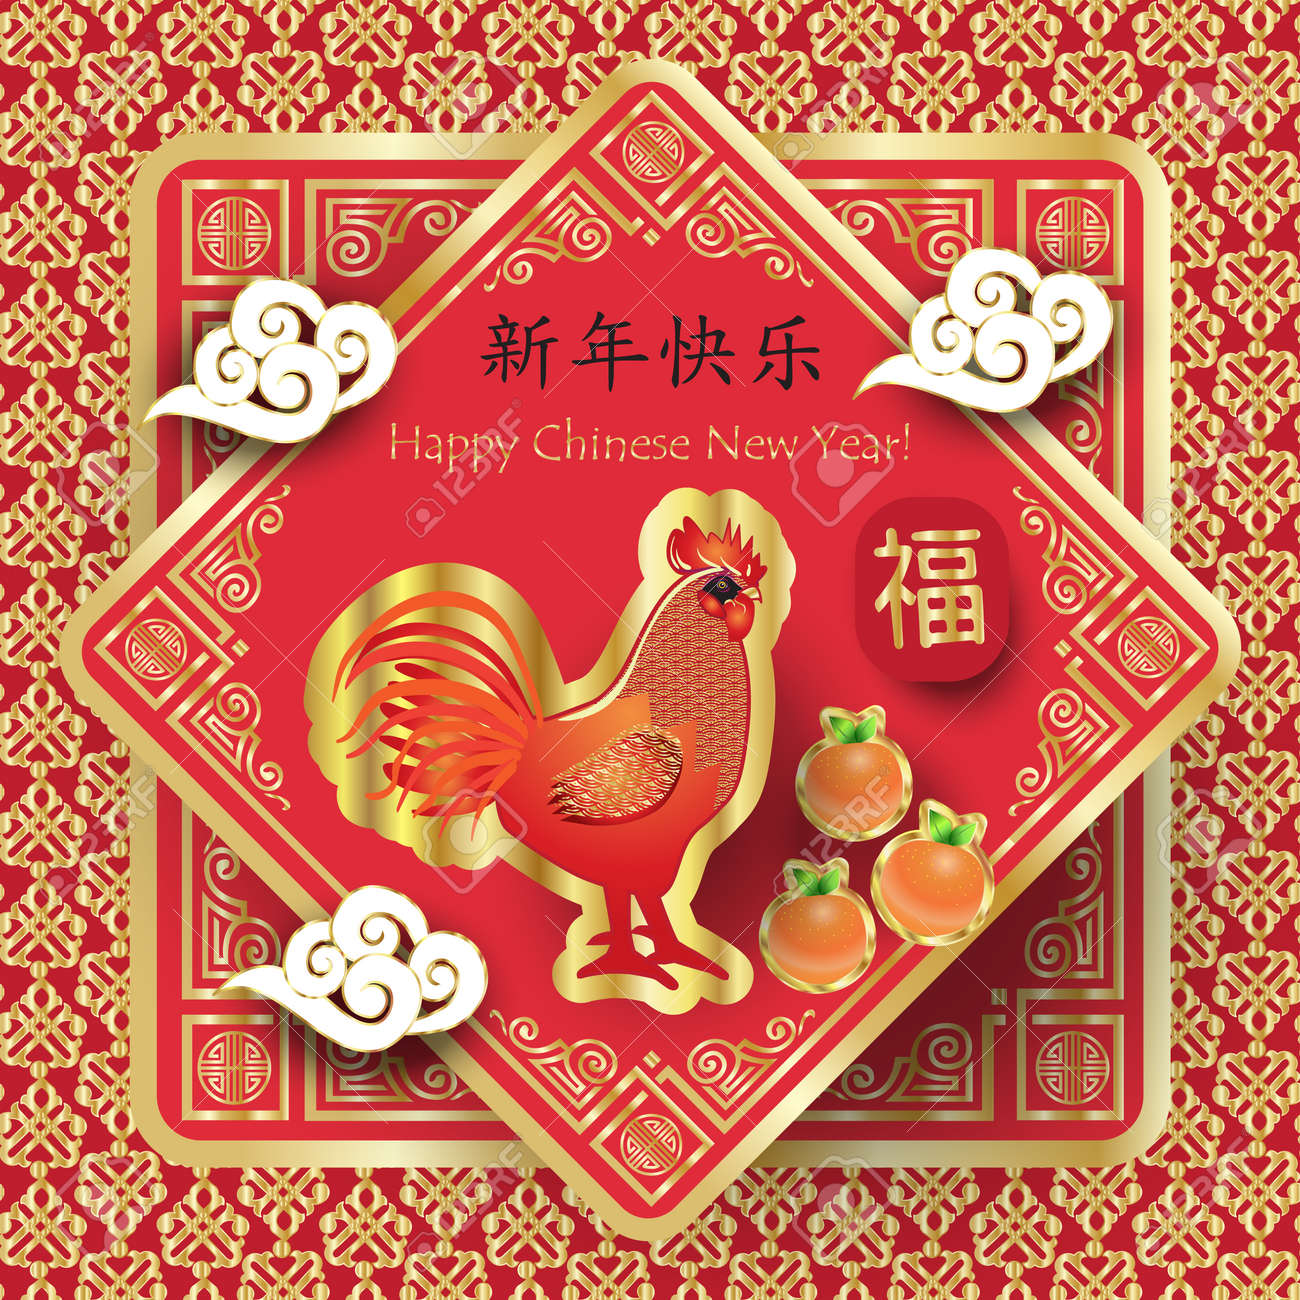 Chinese new year 2017 greeting card rooster and mandarin on chinese new year 2017 greeting card rooster and mandarin on red background with ornamental frame m4hsunfo